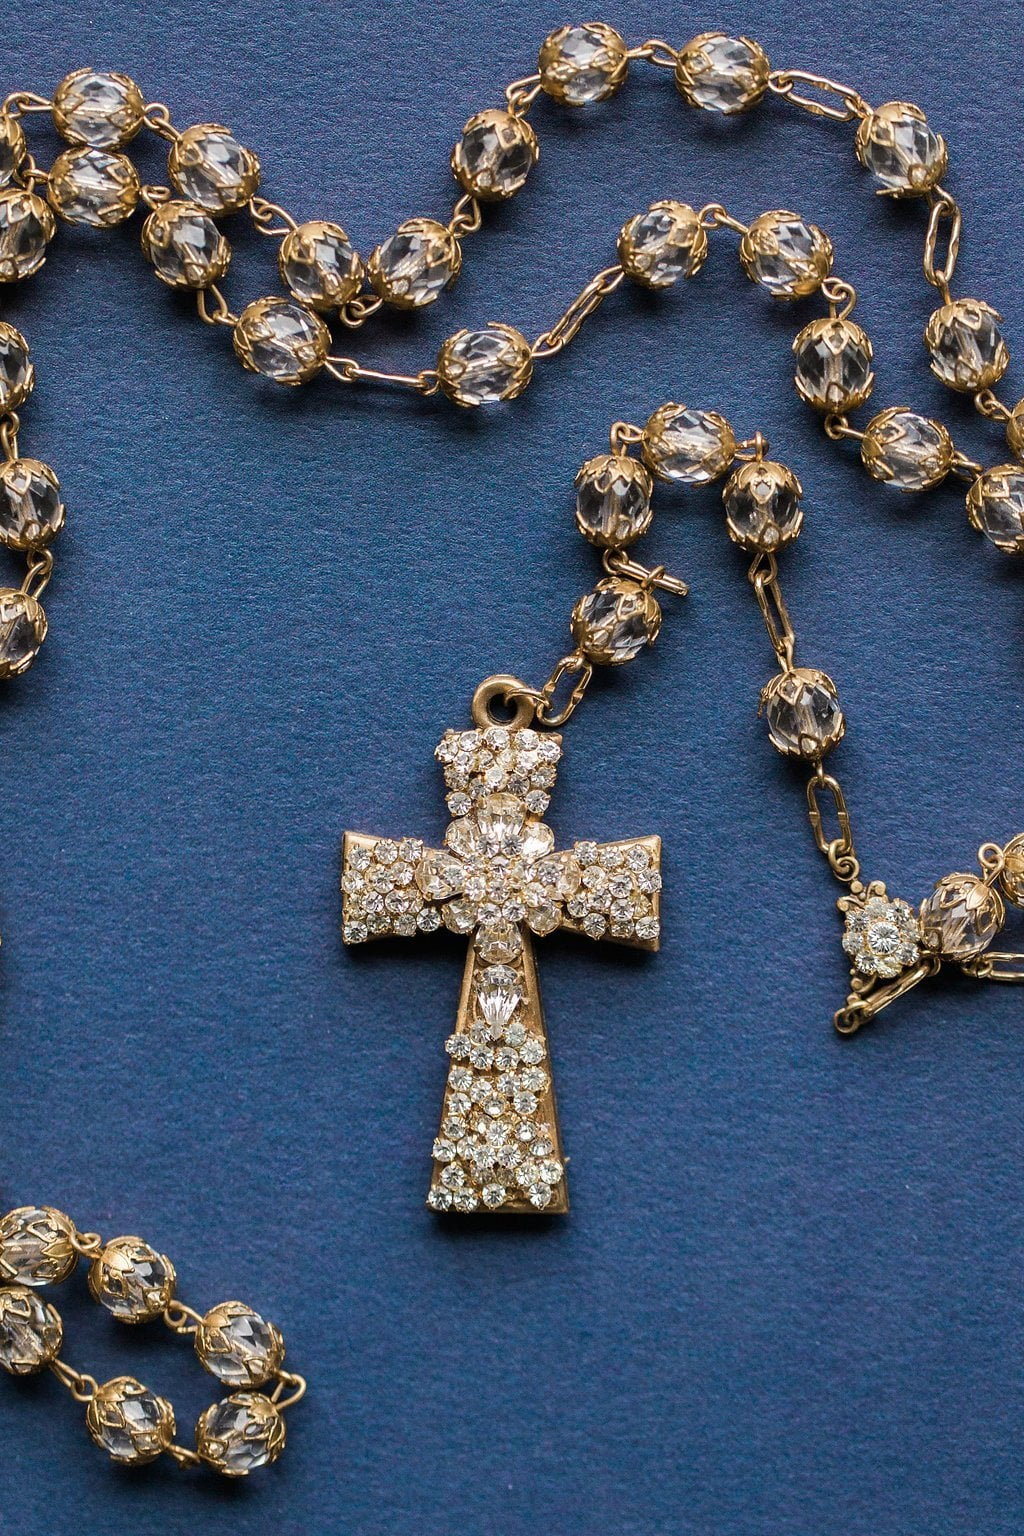 Photograph of gold and diamond rosary cross - J Verno Studios Winter Wedding